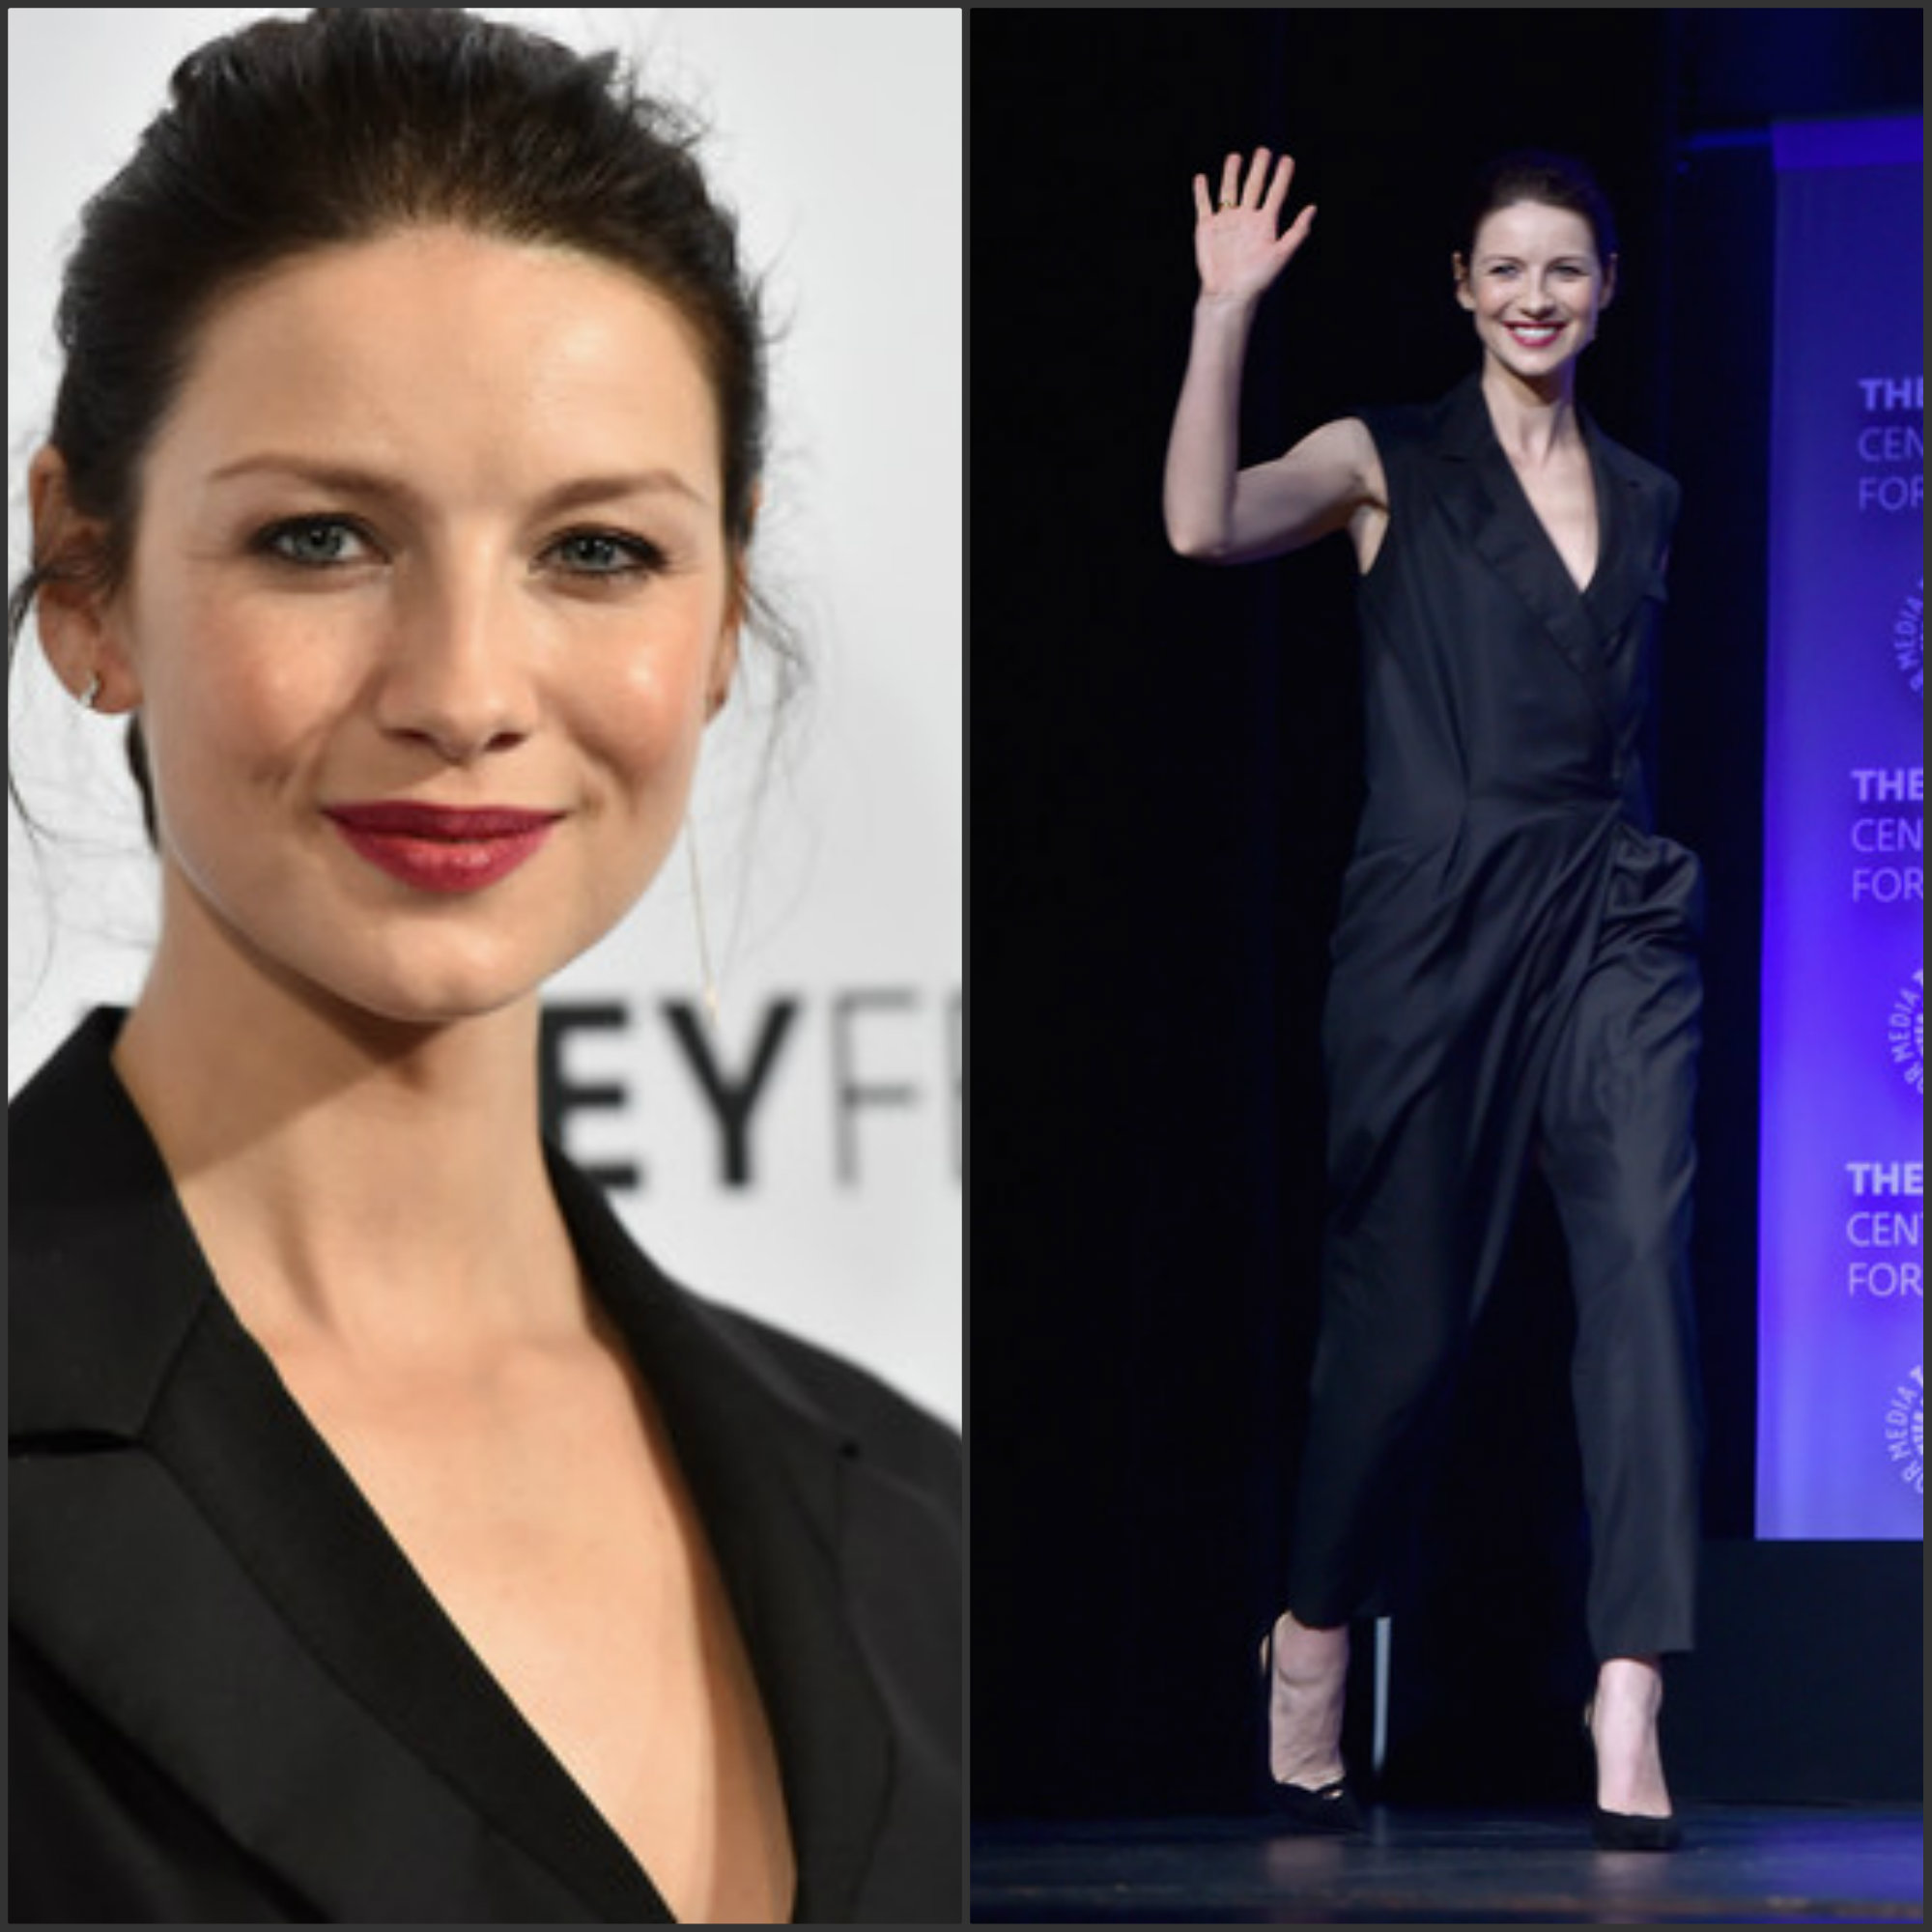 Caitriona-Balfe-in-Bottega-Veneta-at-the-32nd-Annual-PALEYFEST-LA-Outlander-Panel